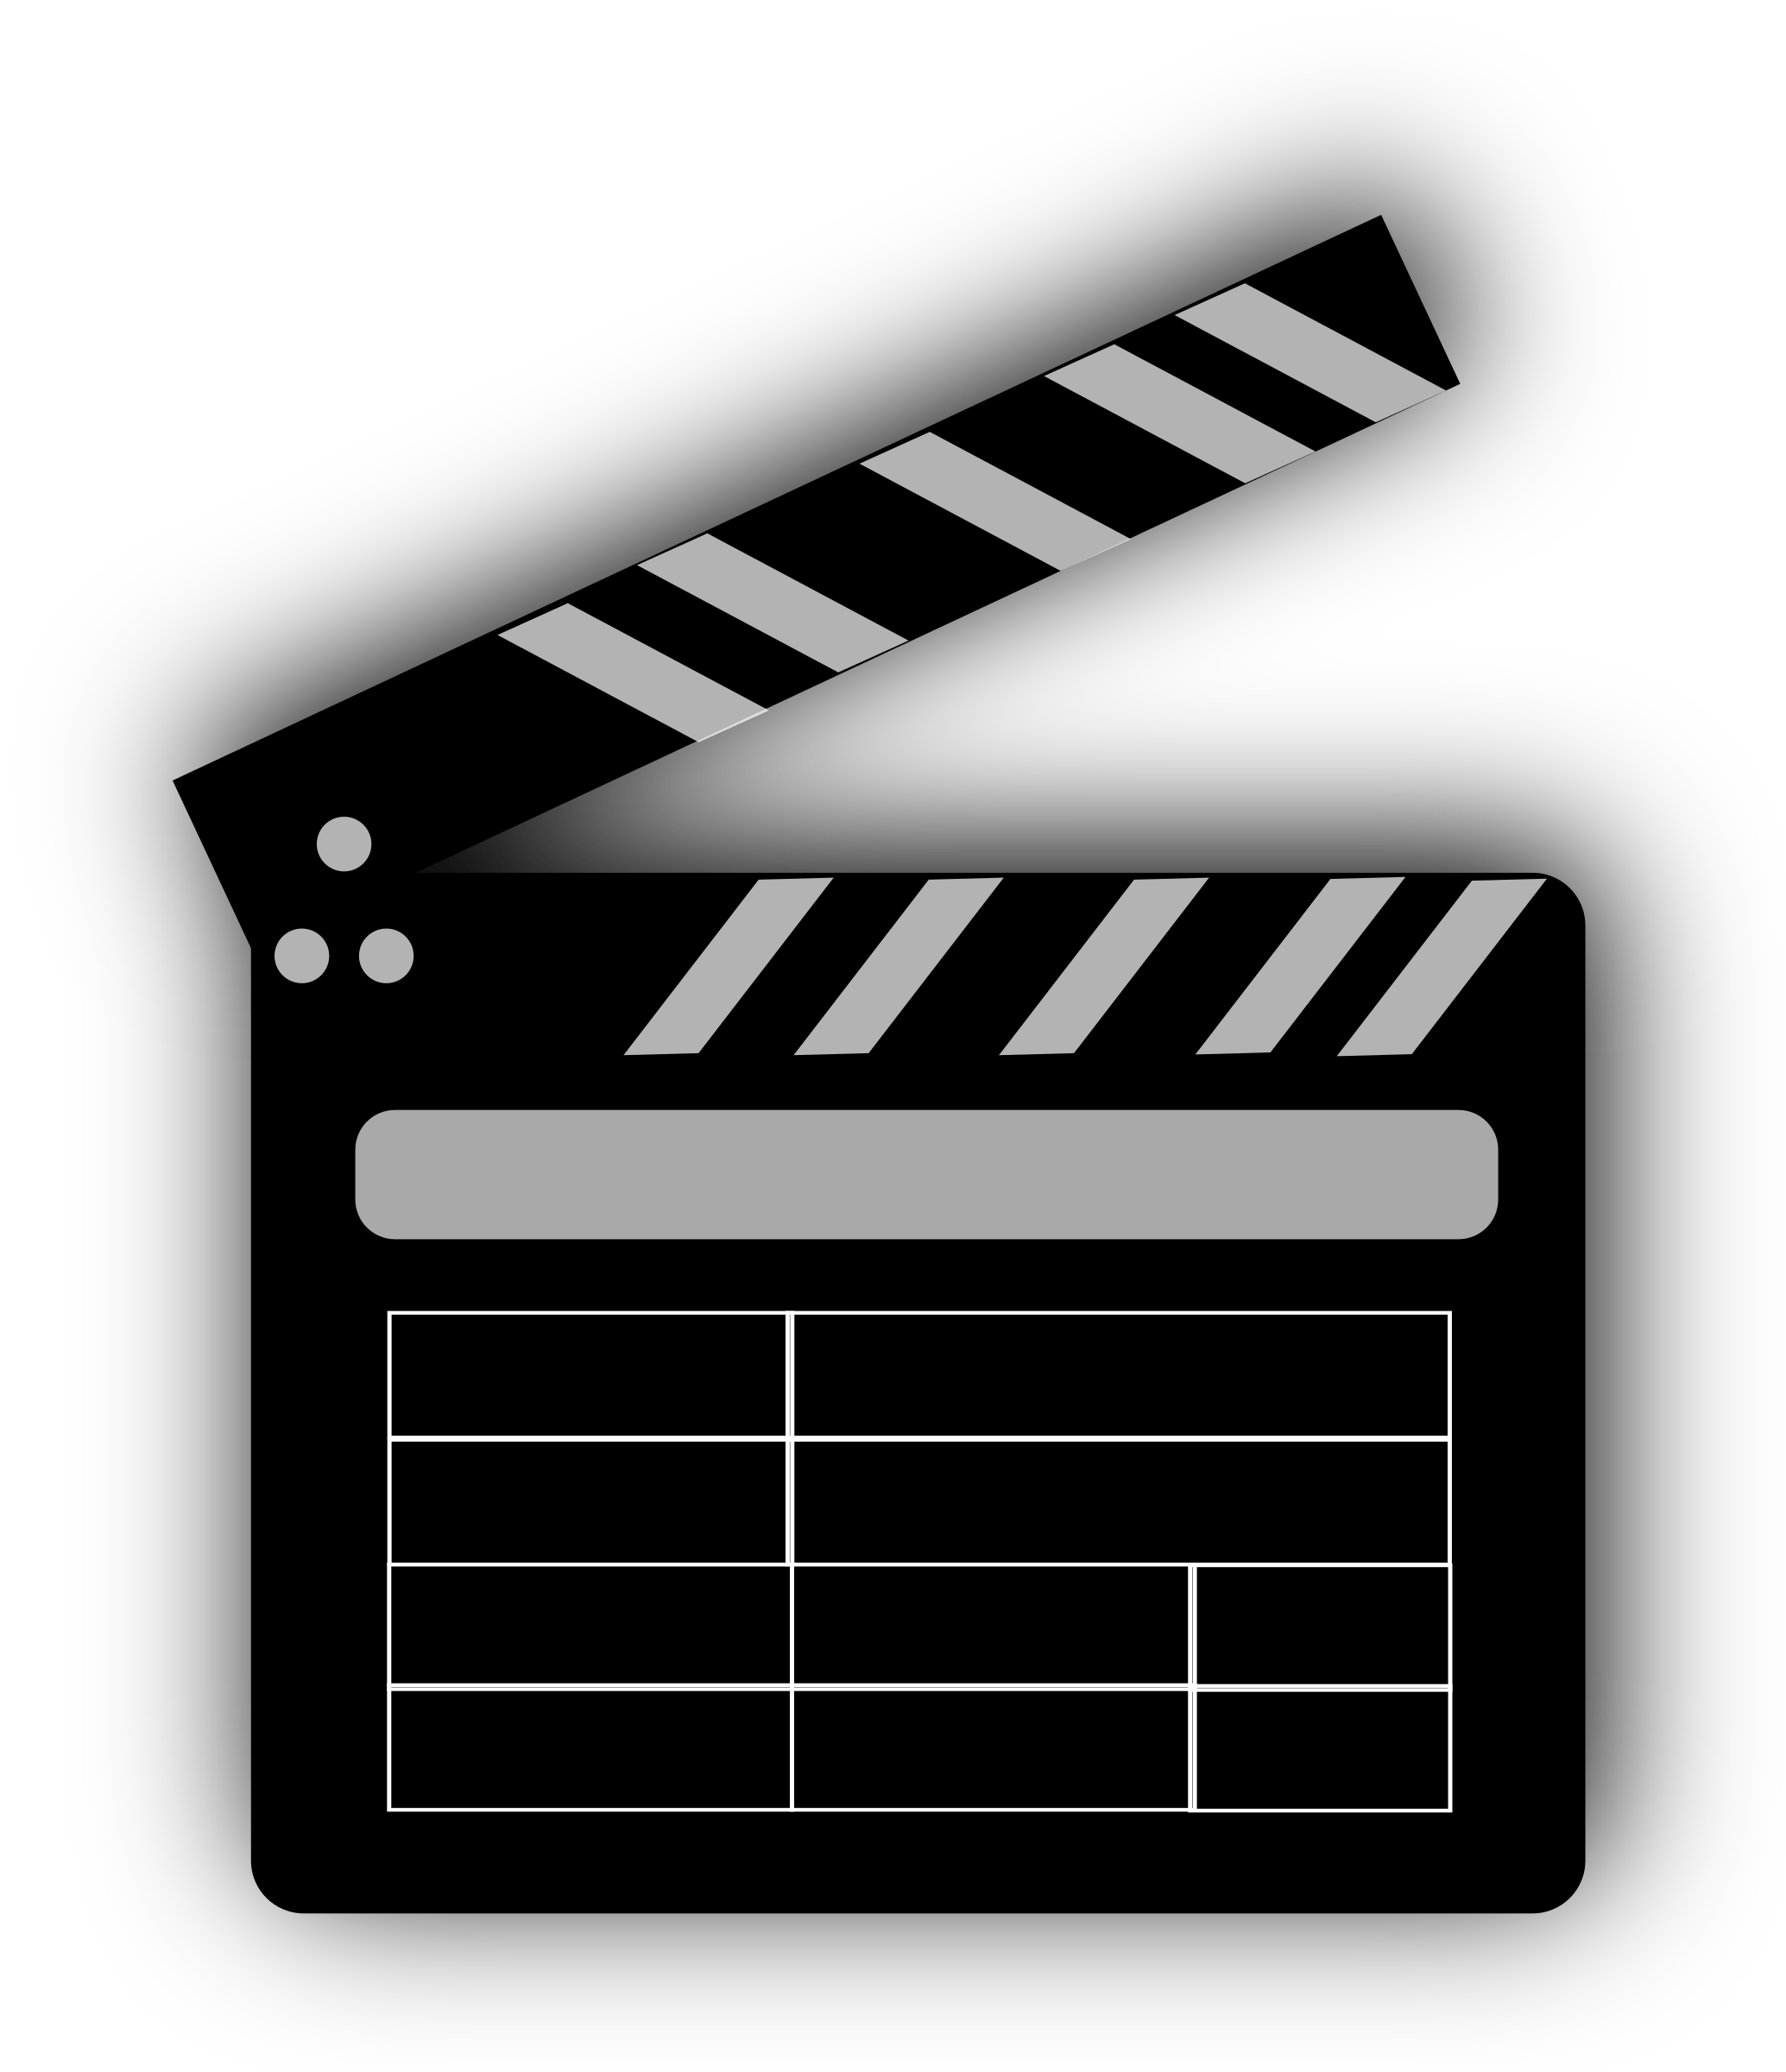 Clapperboard png transparent images. Clip cut film png black and white stock